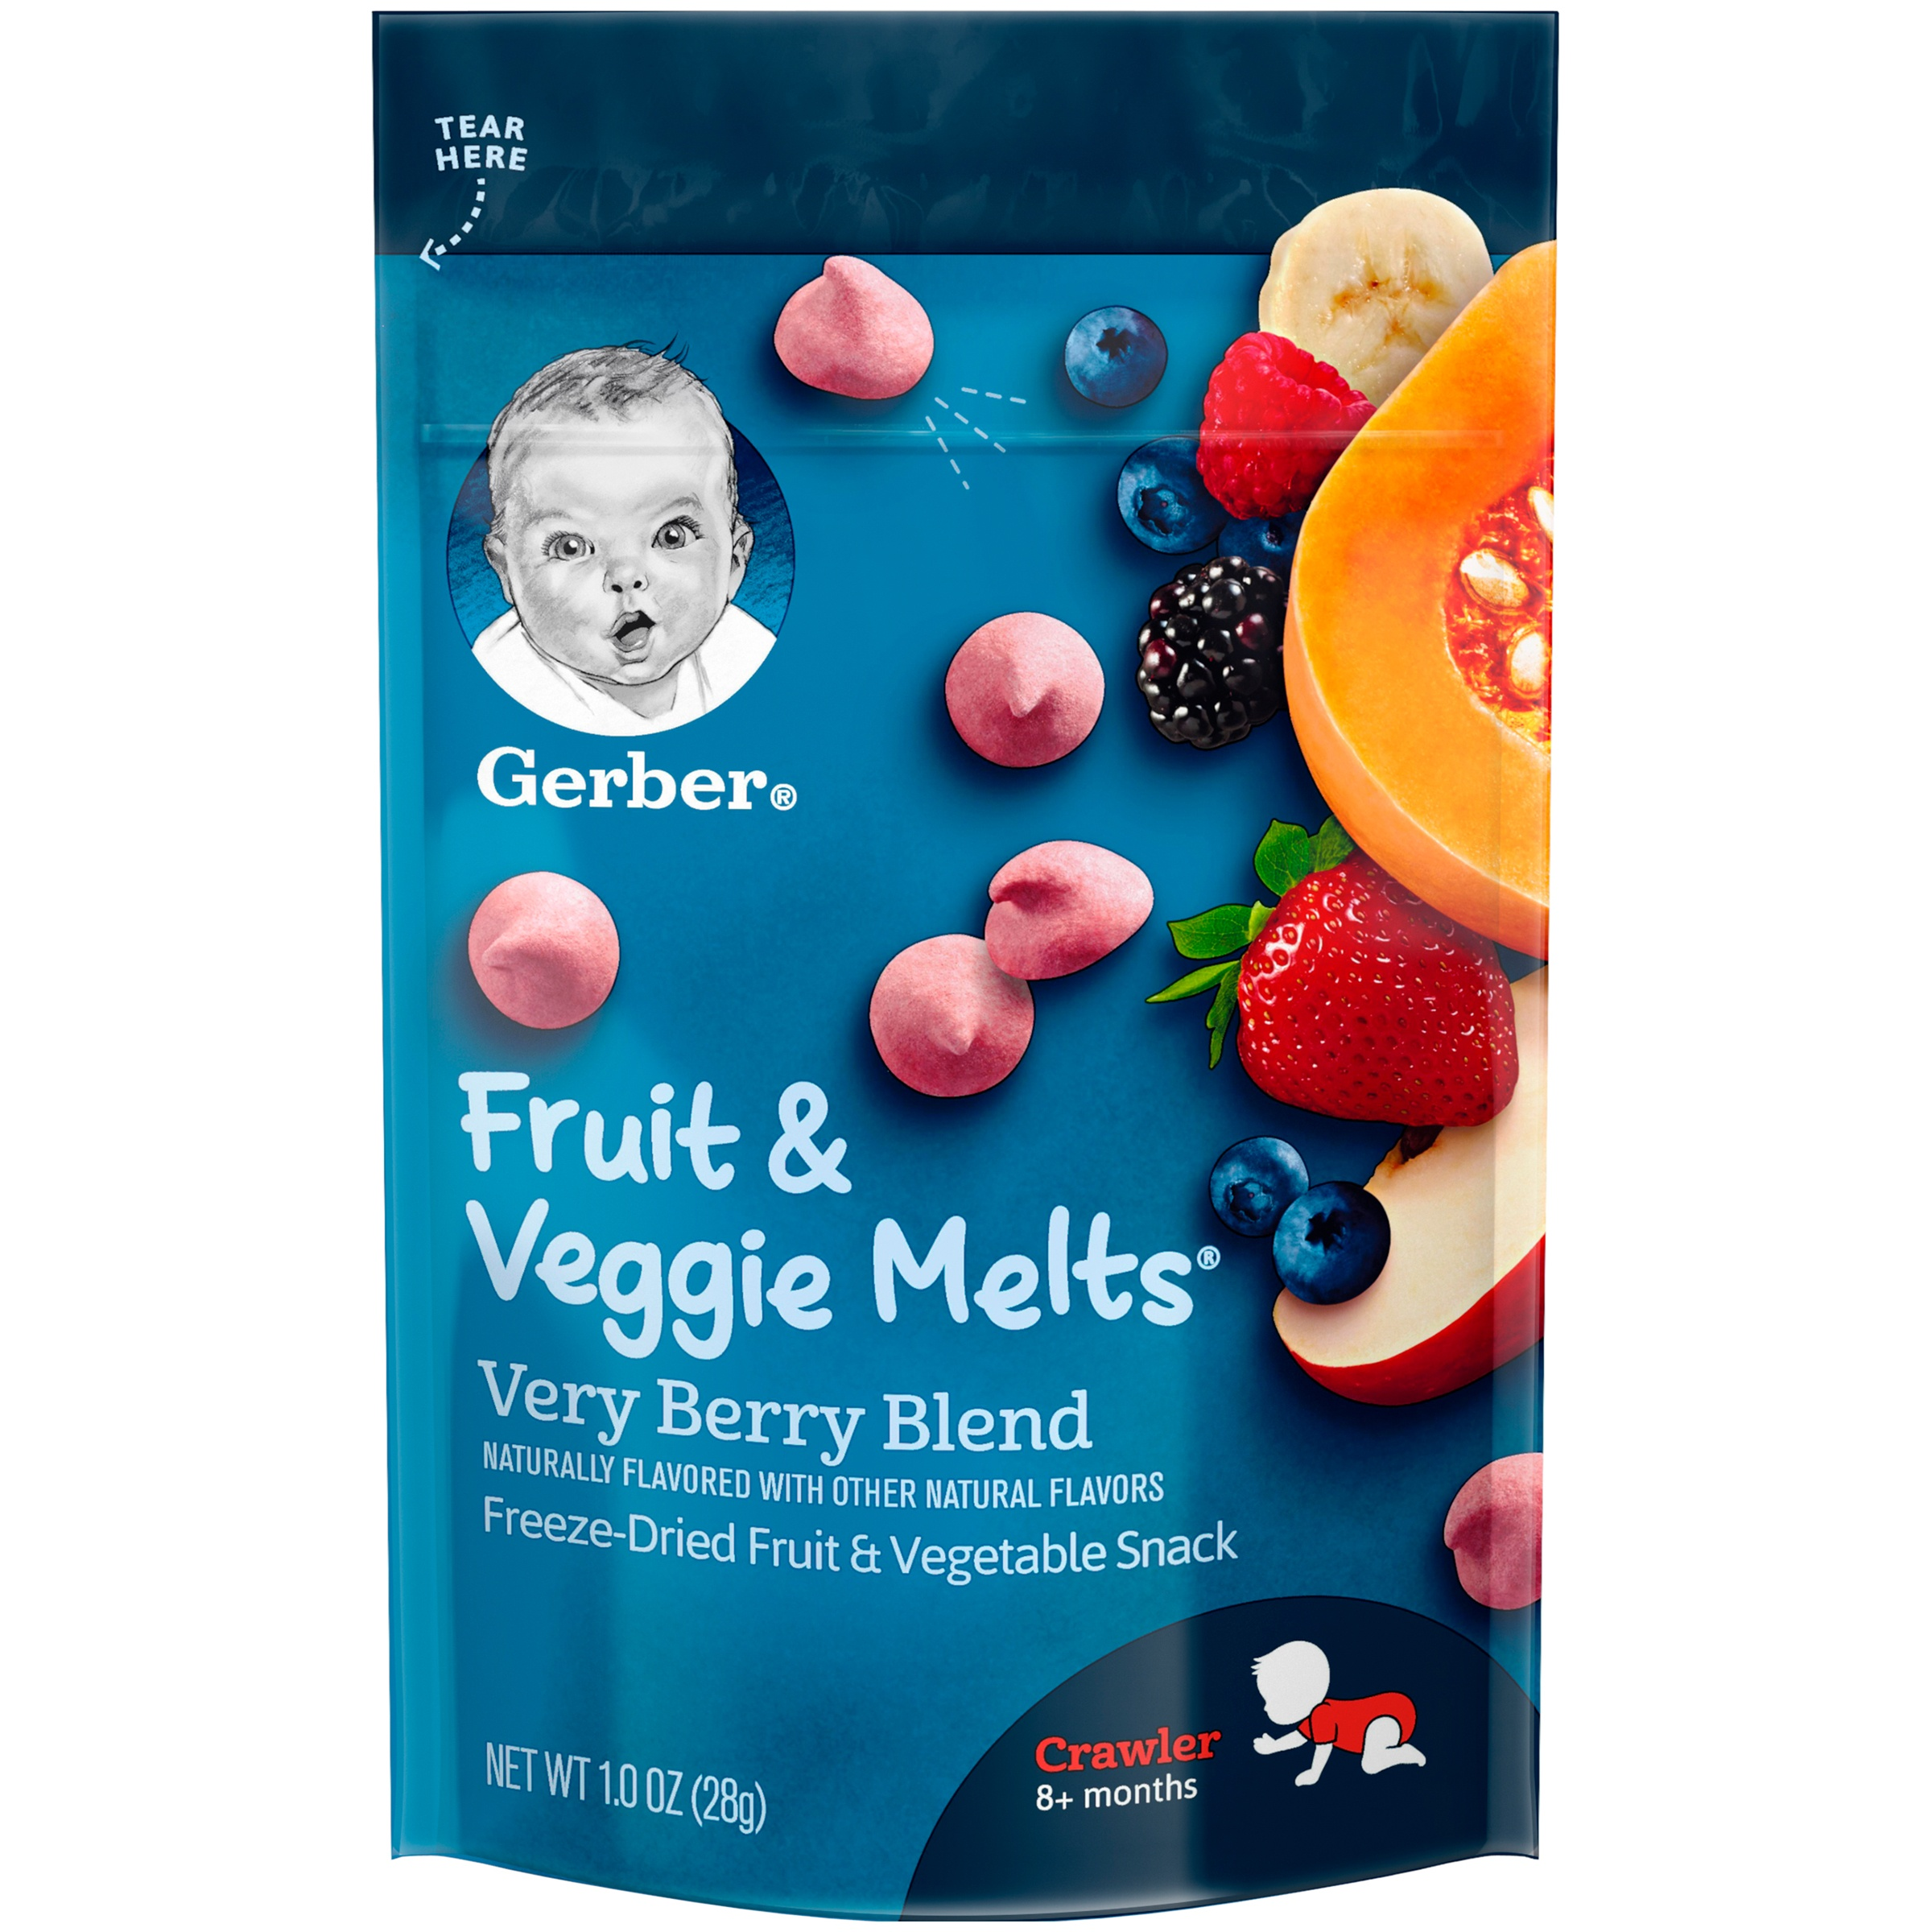 Gerber Fruit & Veggie Melts Freeze-Dried Fruit and Vegetable Snacks, Very Berry Blend, 1 oz